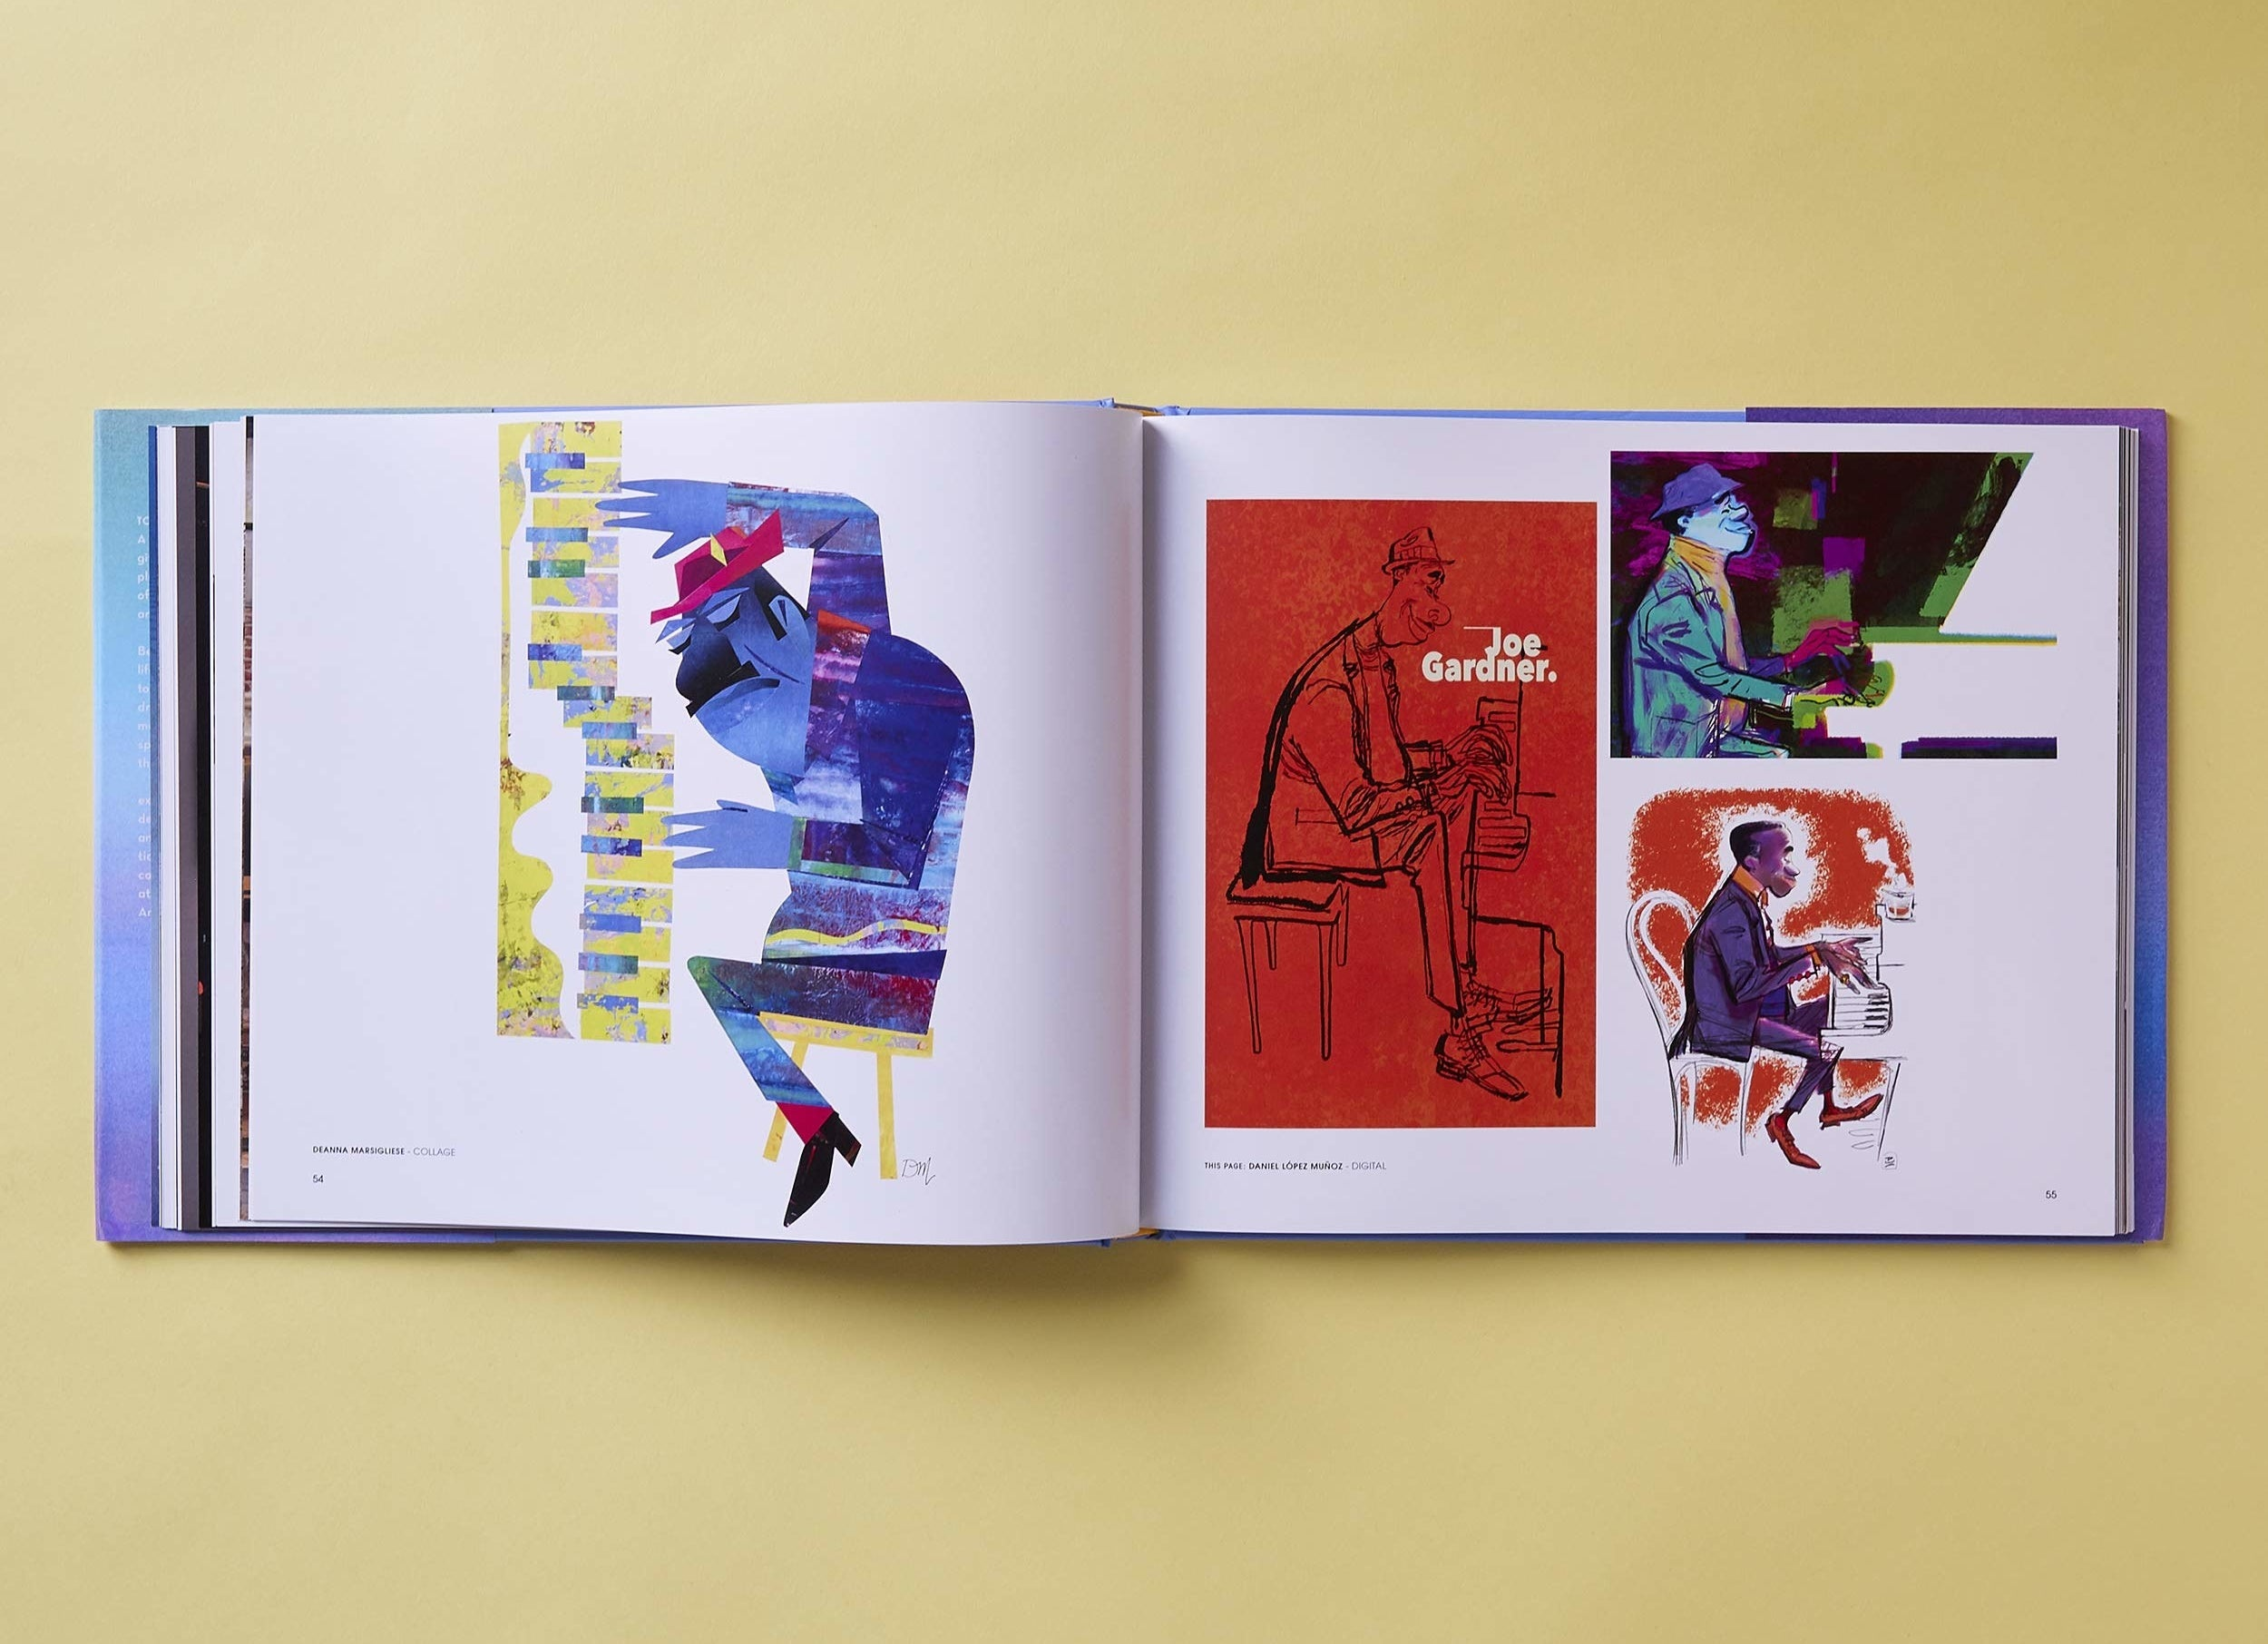 The Art Of Soul book opened to two illustrated pages